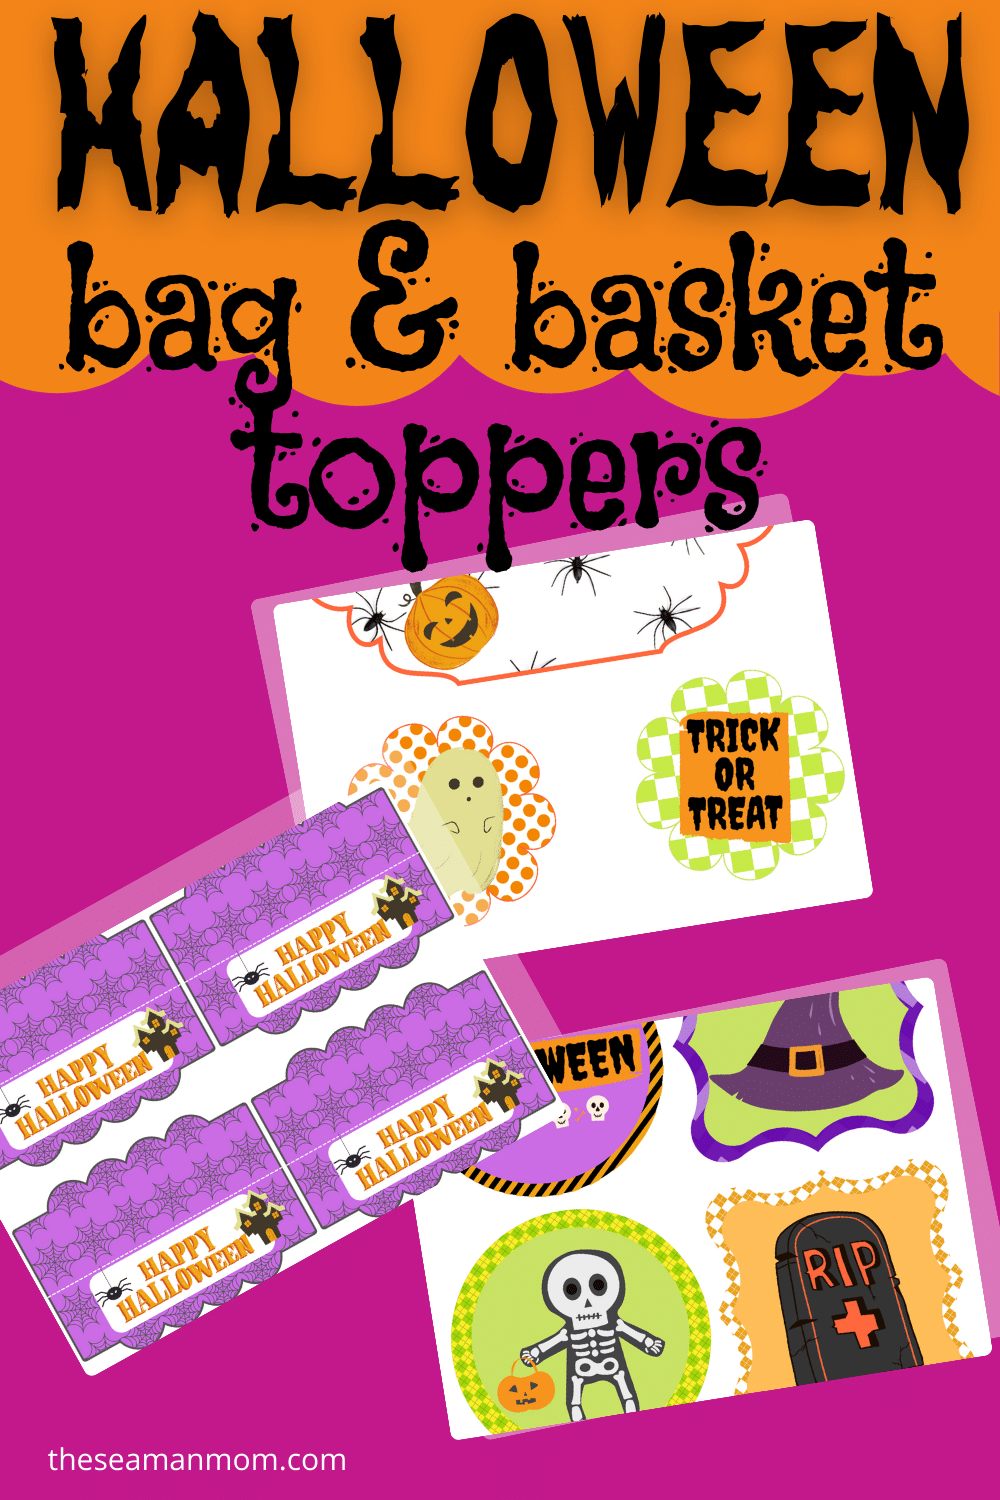 It's so much fun to add little decorative elements to your Halloween party and décor, as well as do fun things for your children! My pack of Halloween toppers for the goodie bags and for the cupcakes or cakes can help with that! via @petroneagu